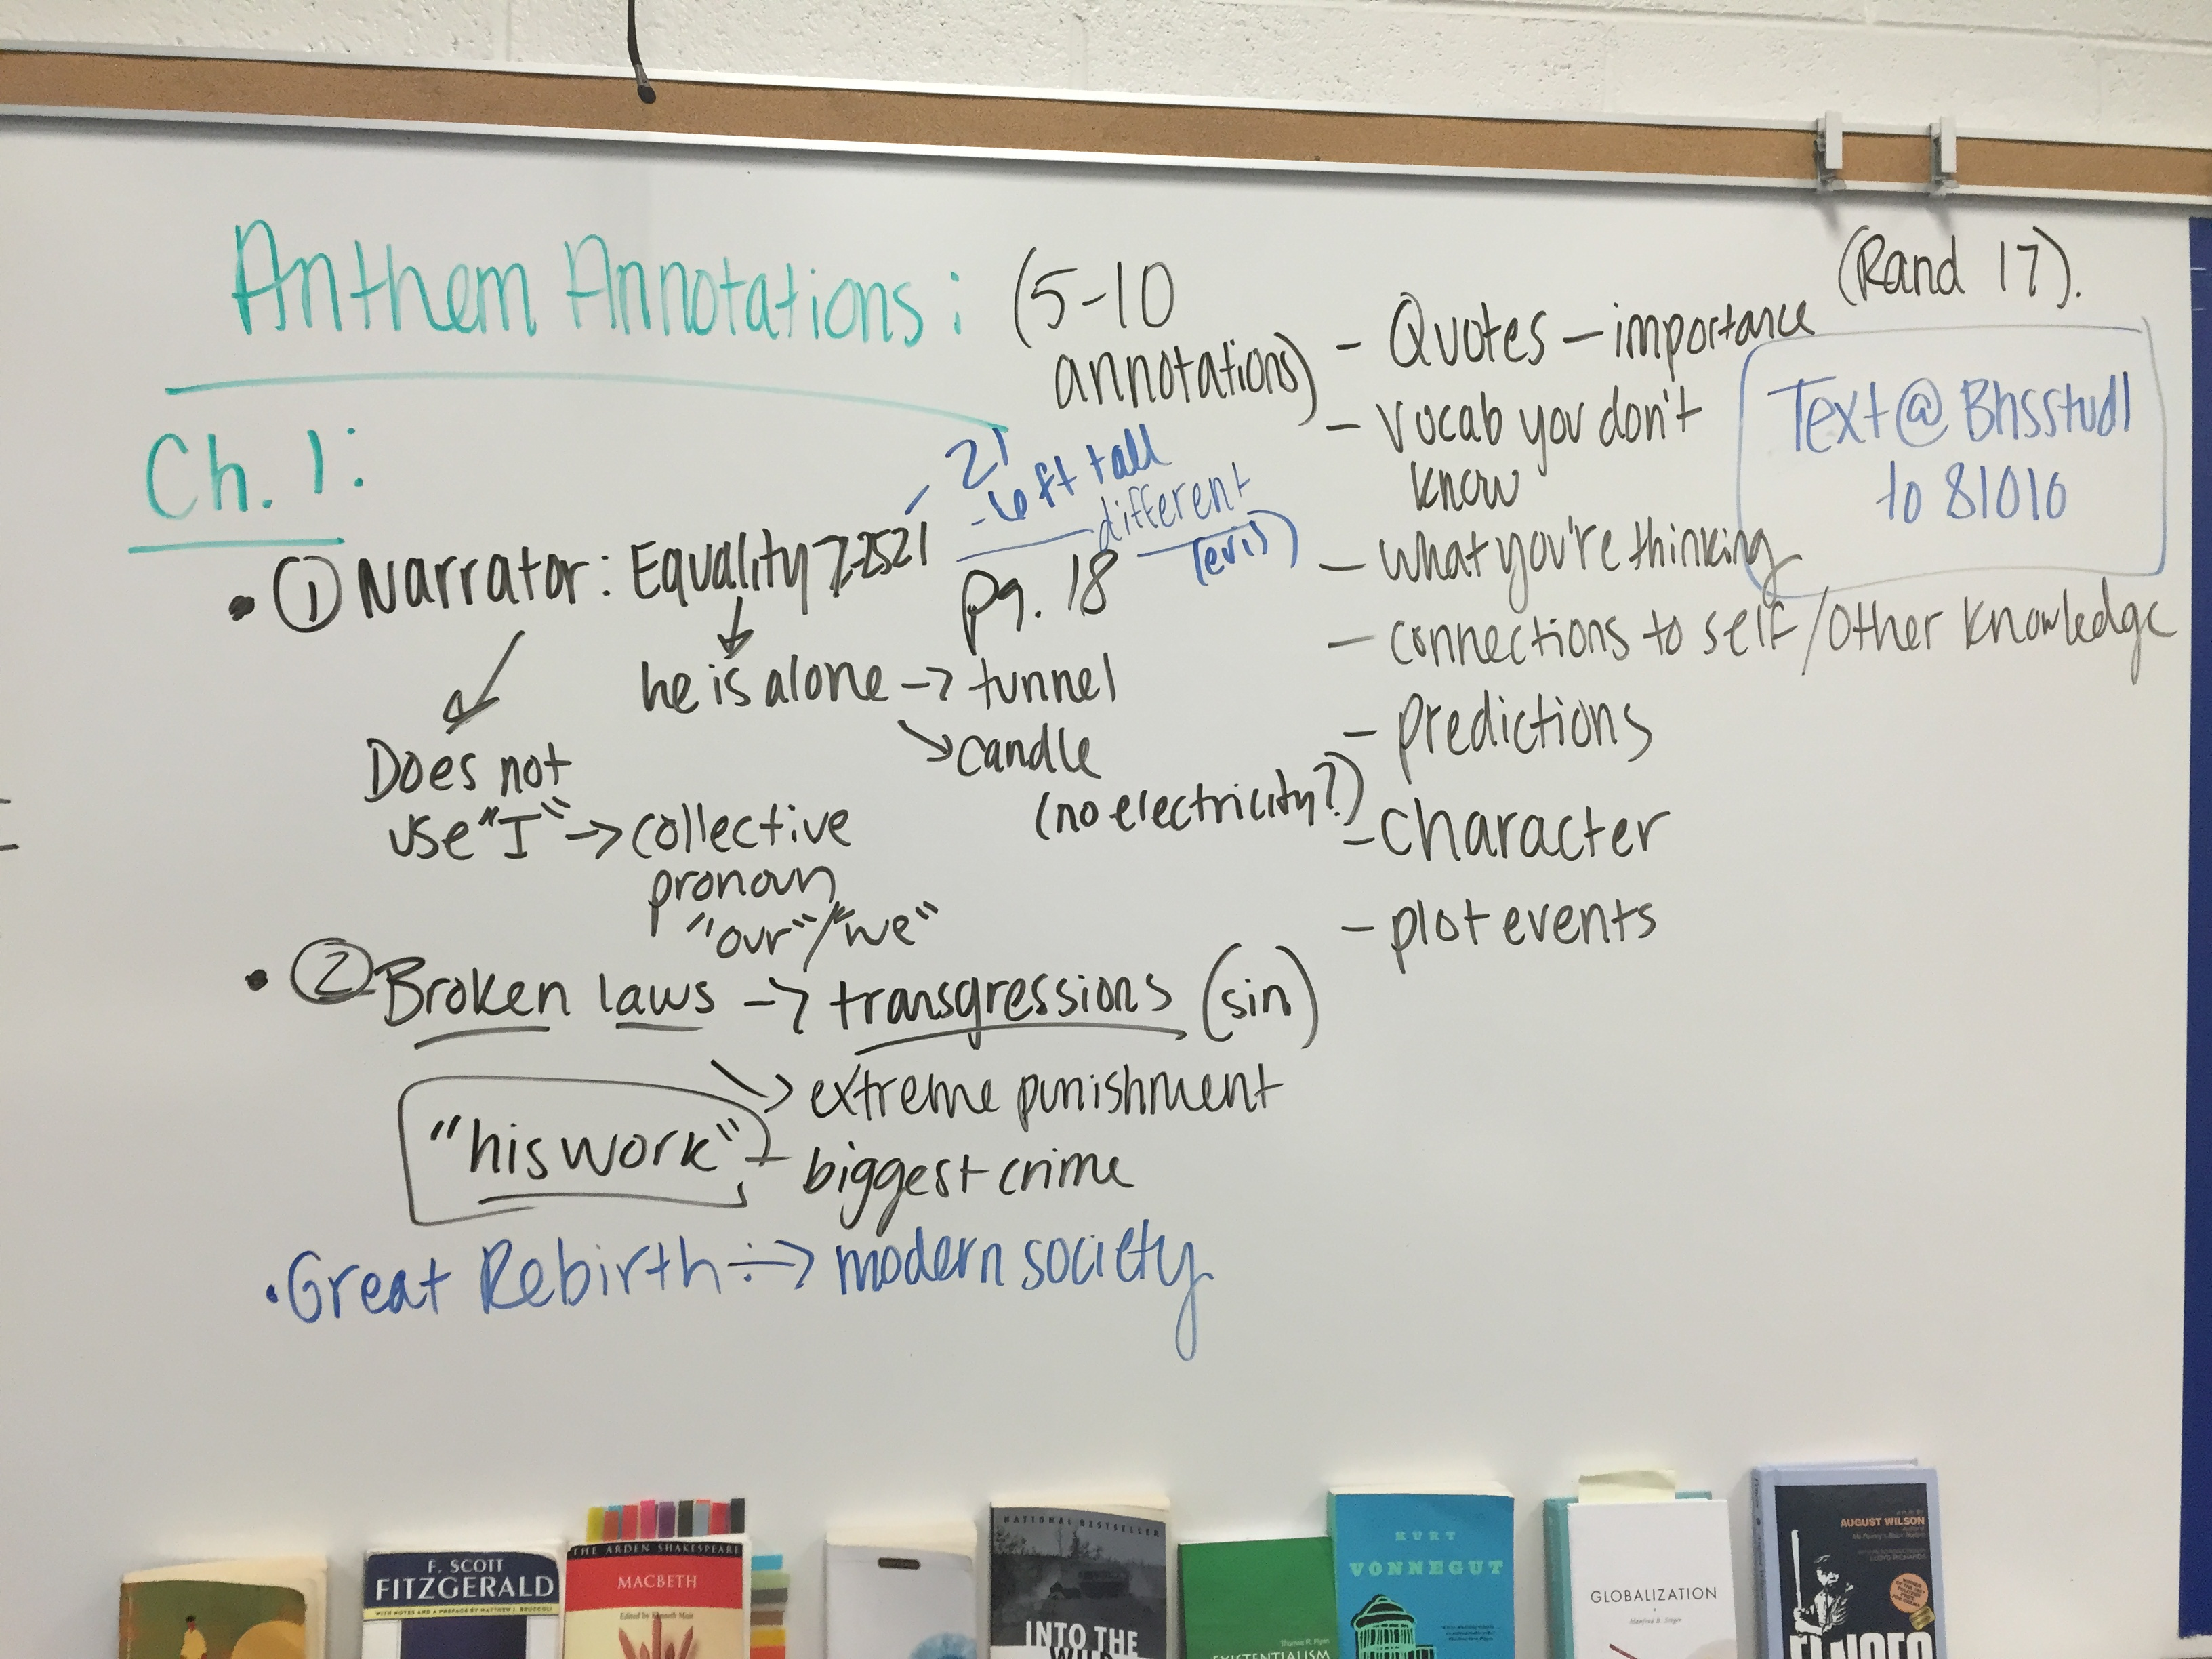 english introduction to ayn rand and anthem ms mullins we then began reading ch 1 of anthem full text is linked and here s the audio too together and taking down annotations in our notebook